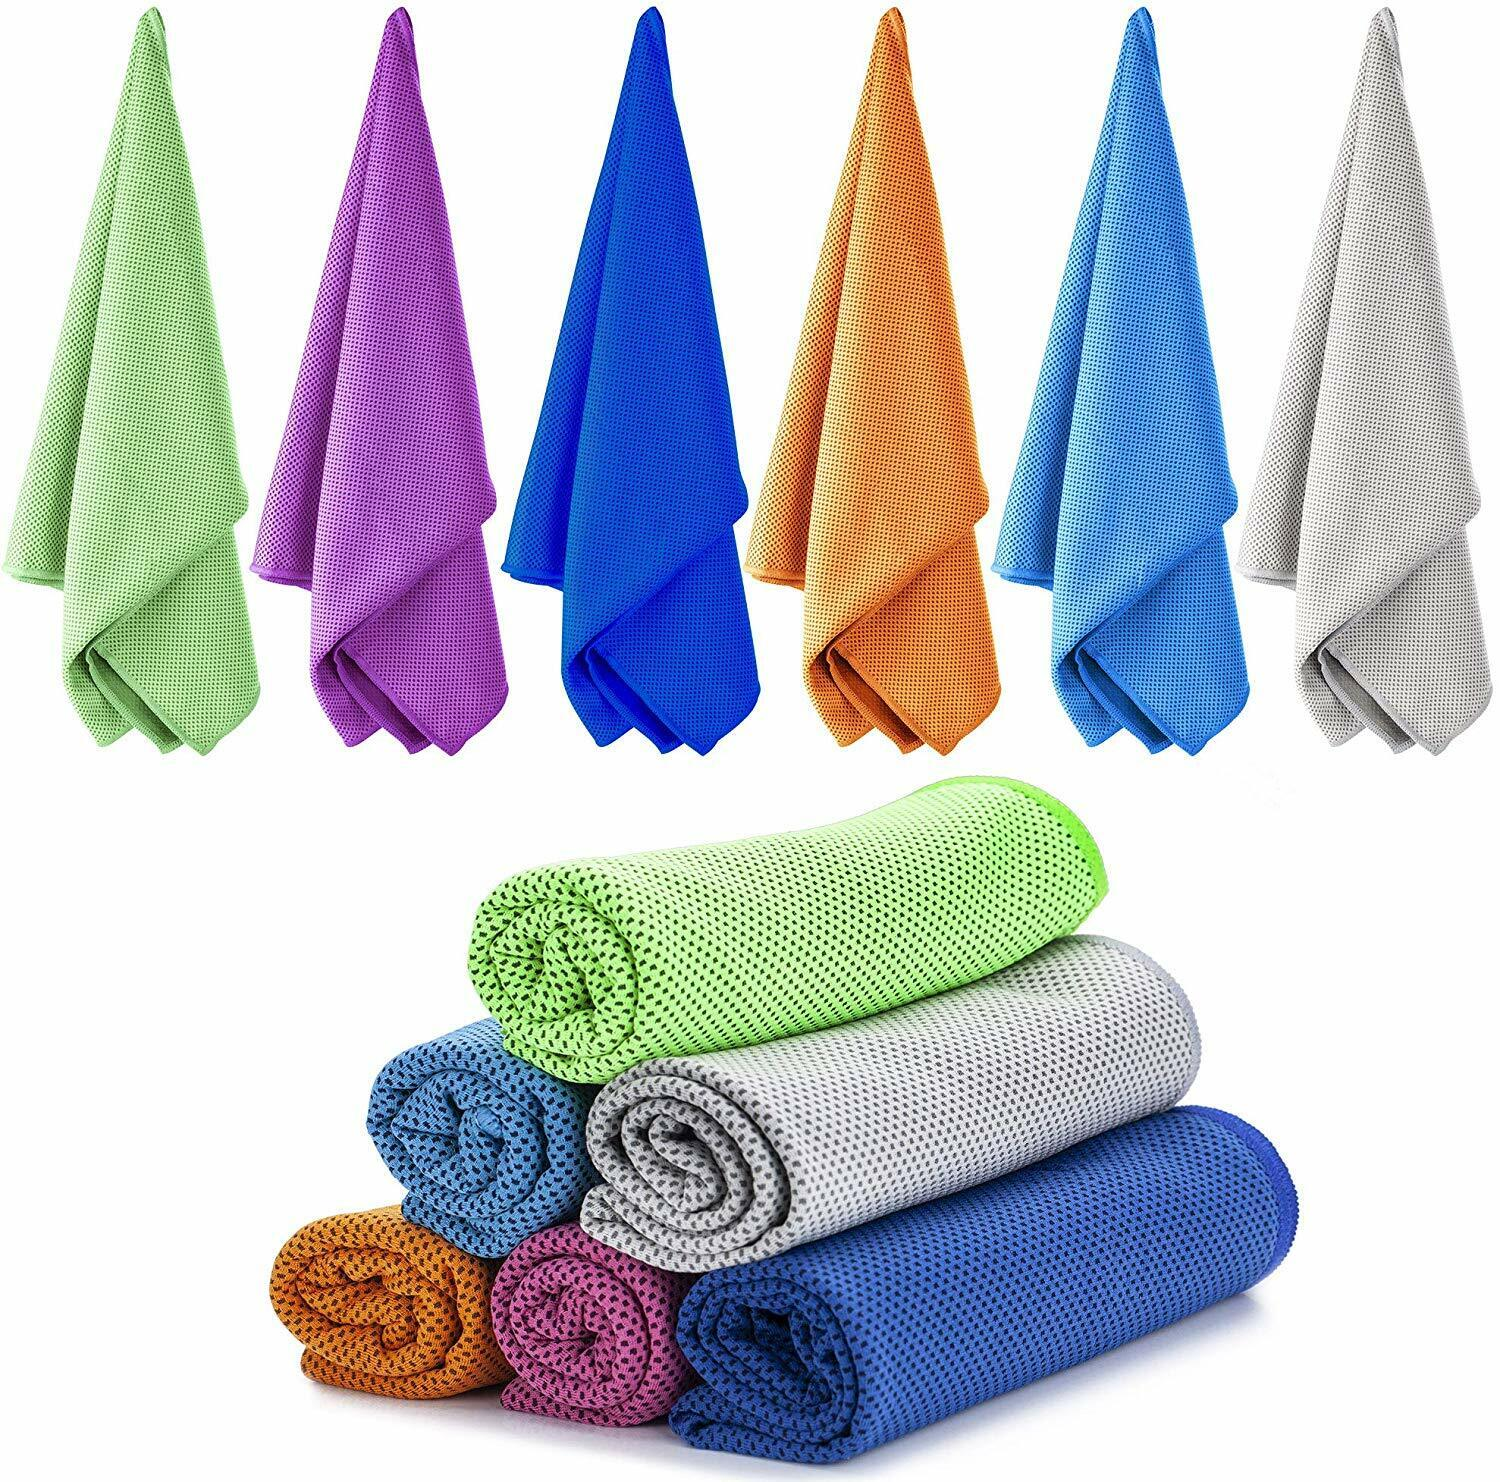 6pk Microfiber Cooling Towels Absorbent Sports Gym Workout T